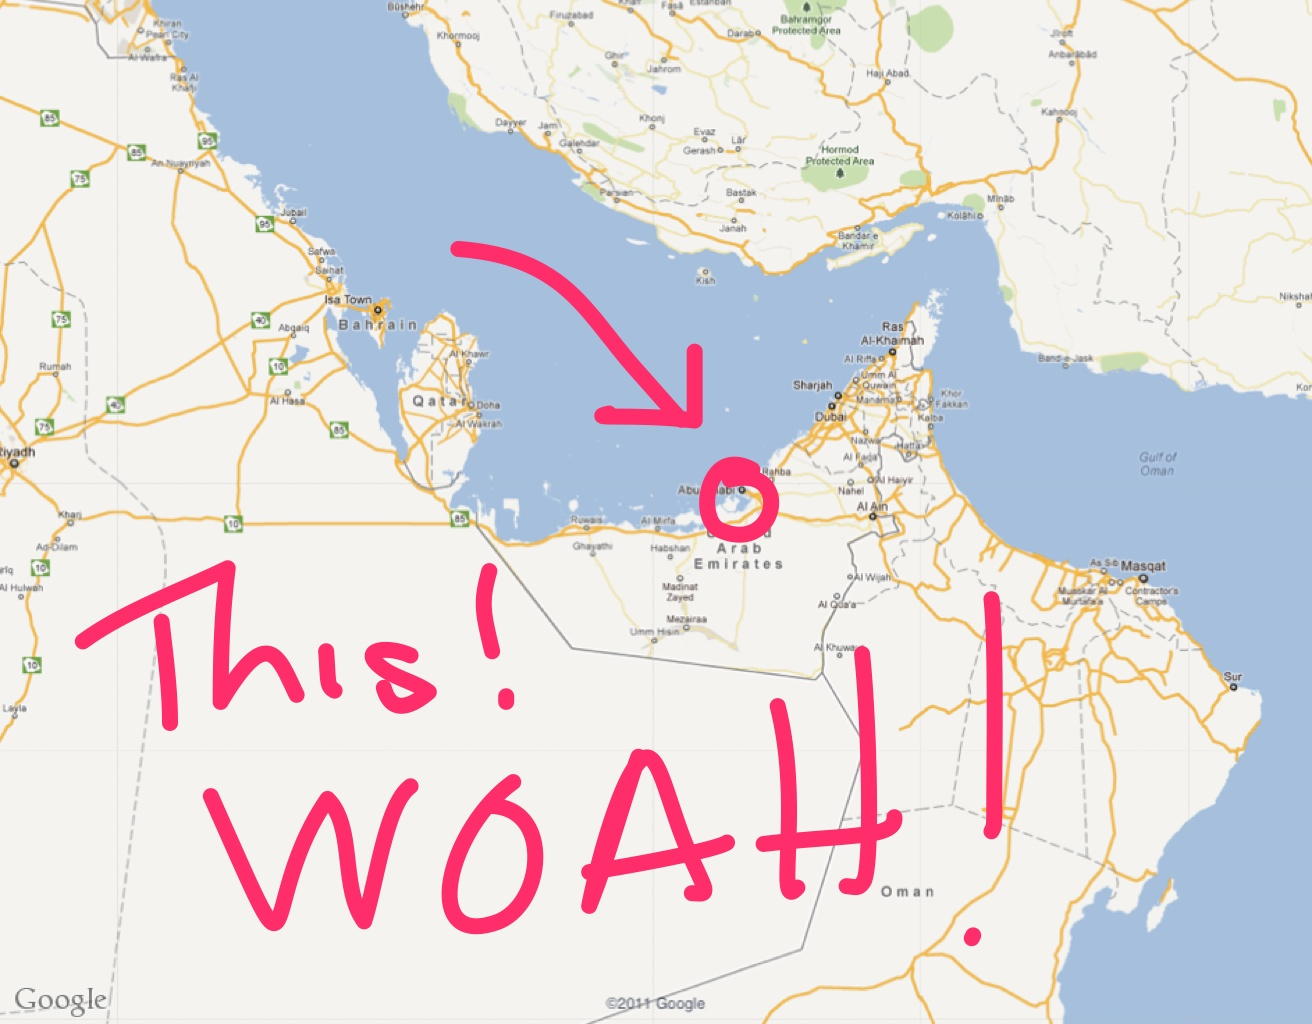 It's in the Middle East, smooshed between Saudi Arabia and Oman